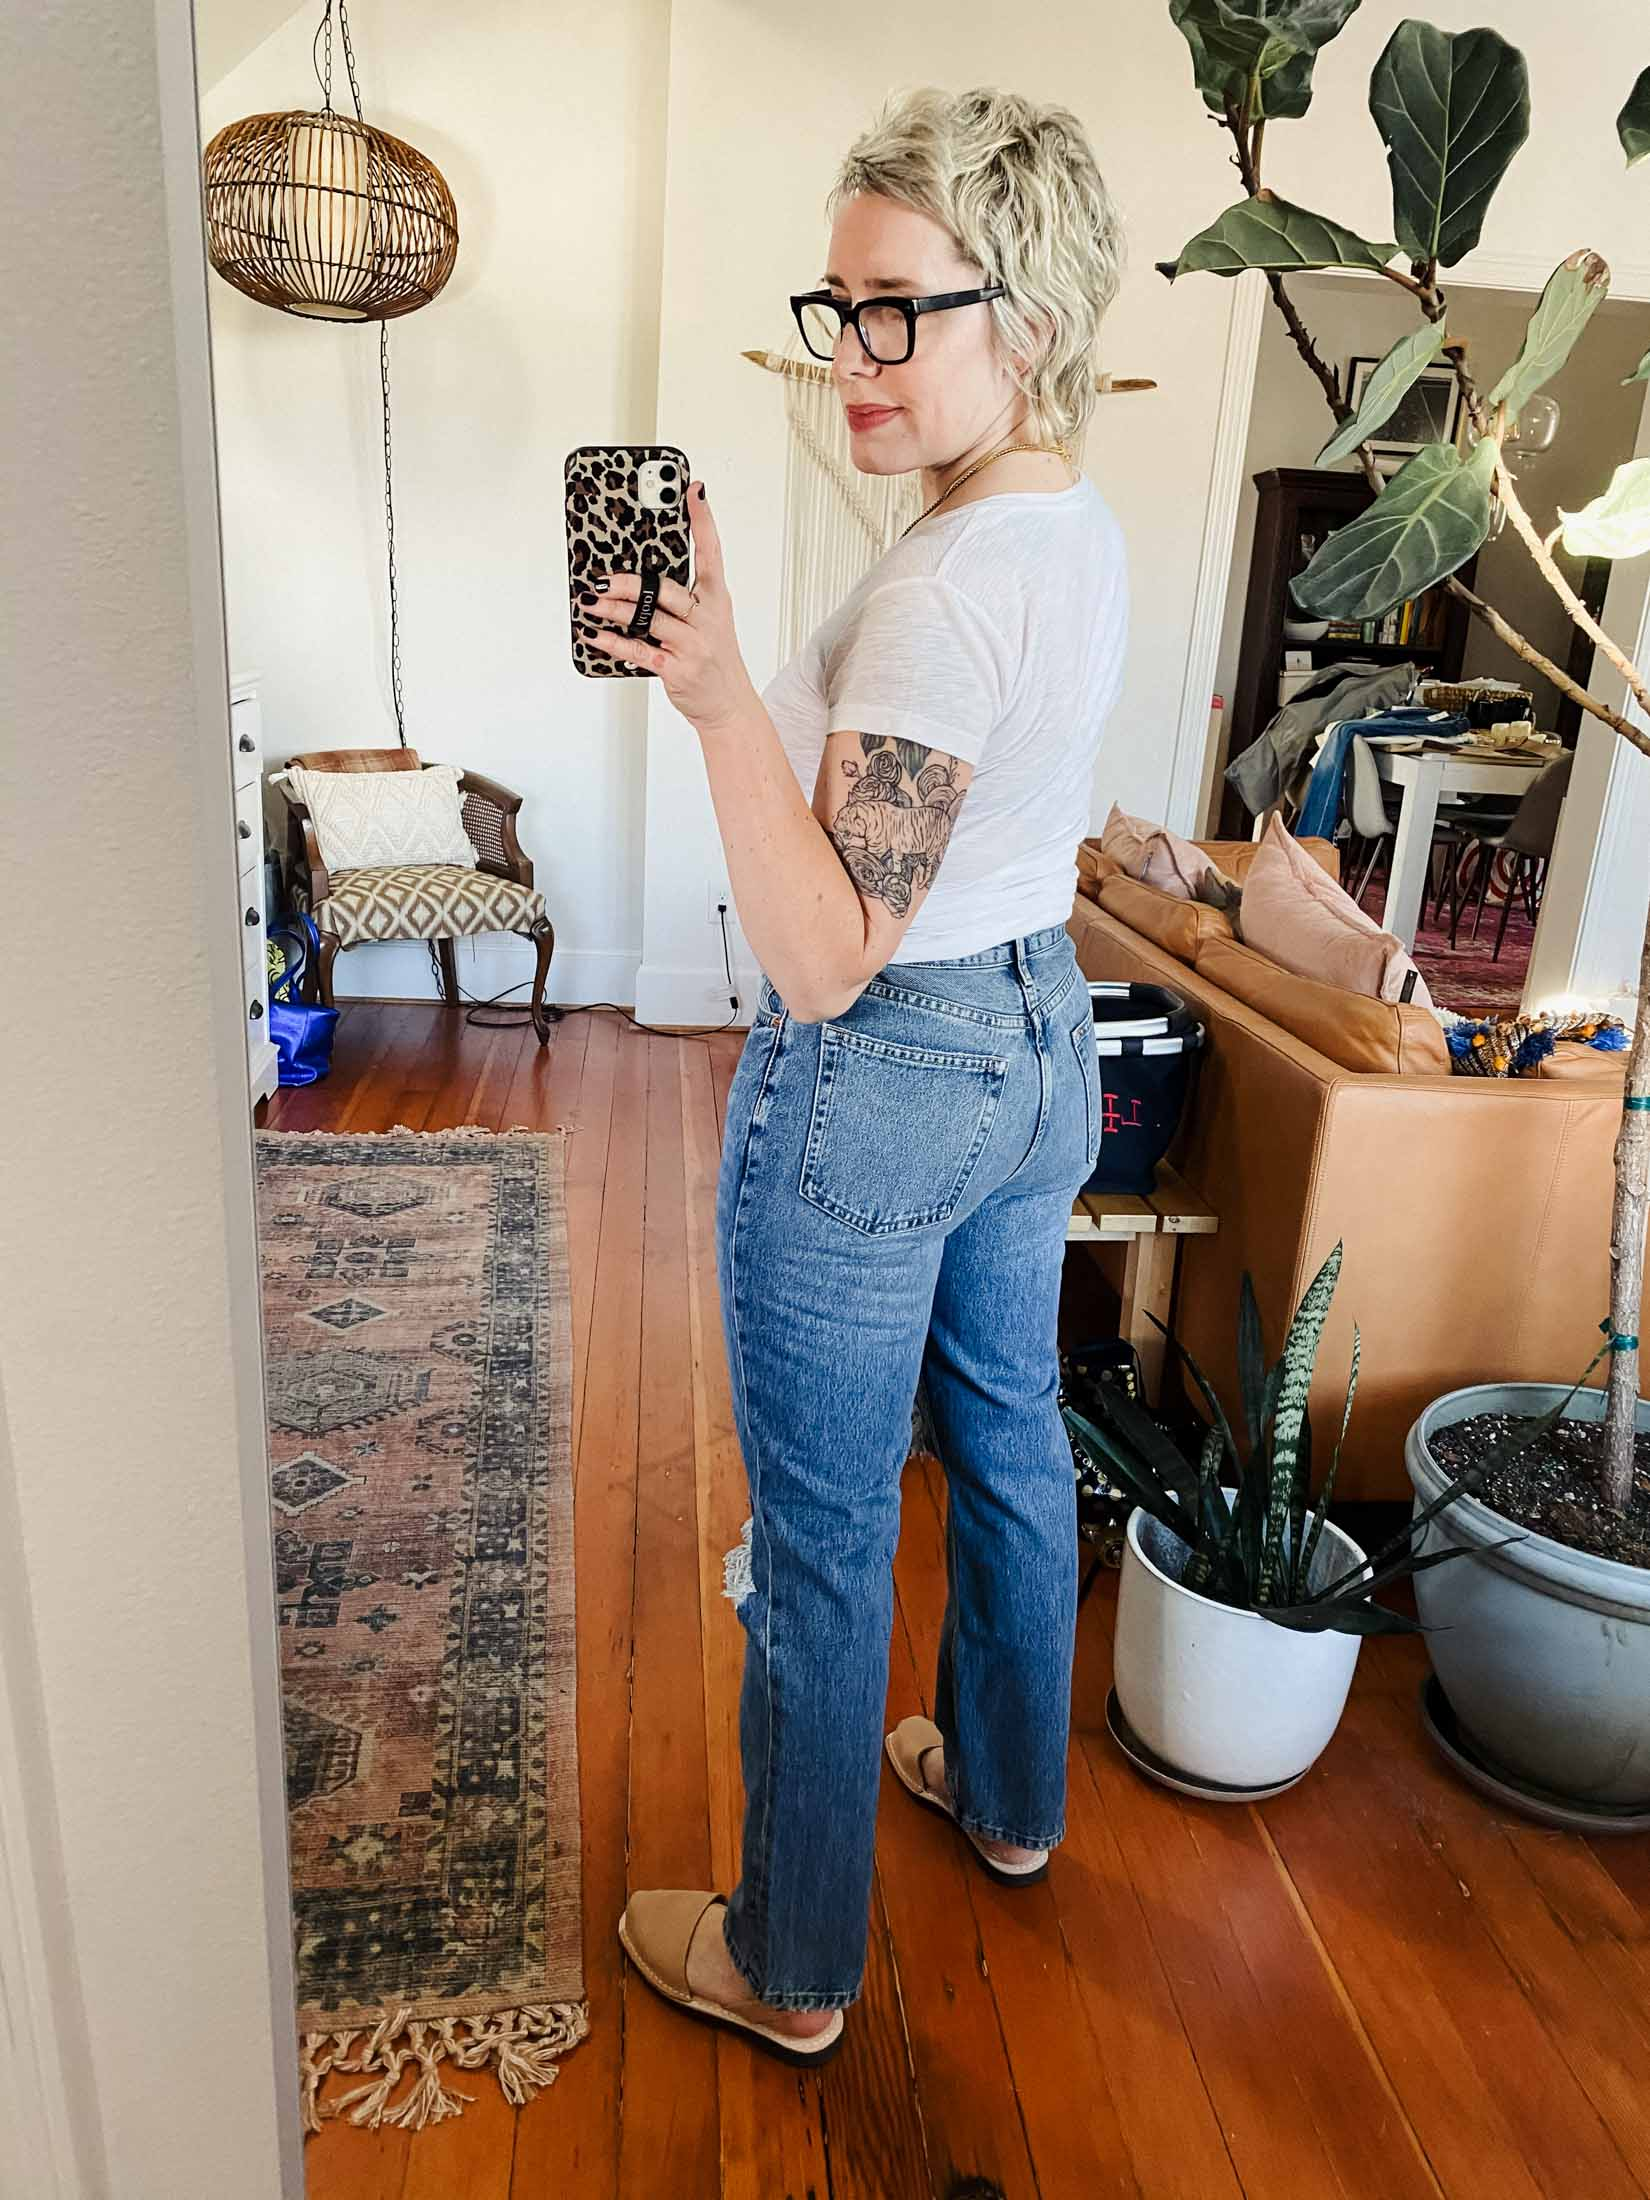 I'm on a mission to find jeans w/ the wash & distressing of my MOTHER Tomcat straight legs, but that work better w/ warm weather shoes like sneaks, sandals & flats.